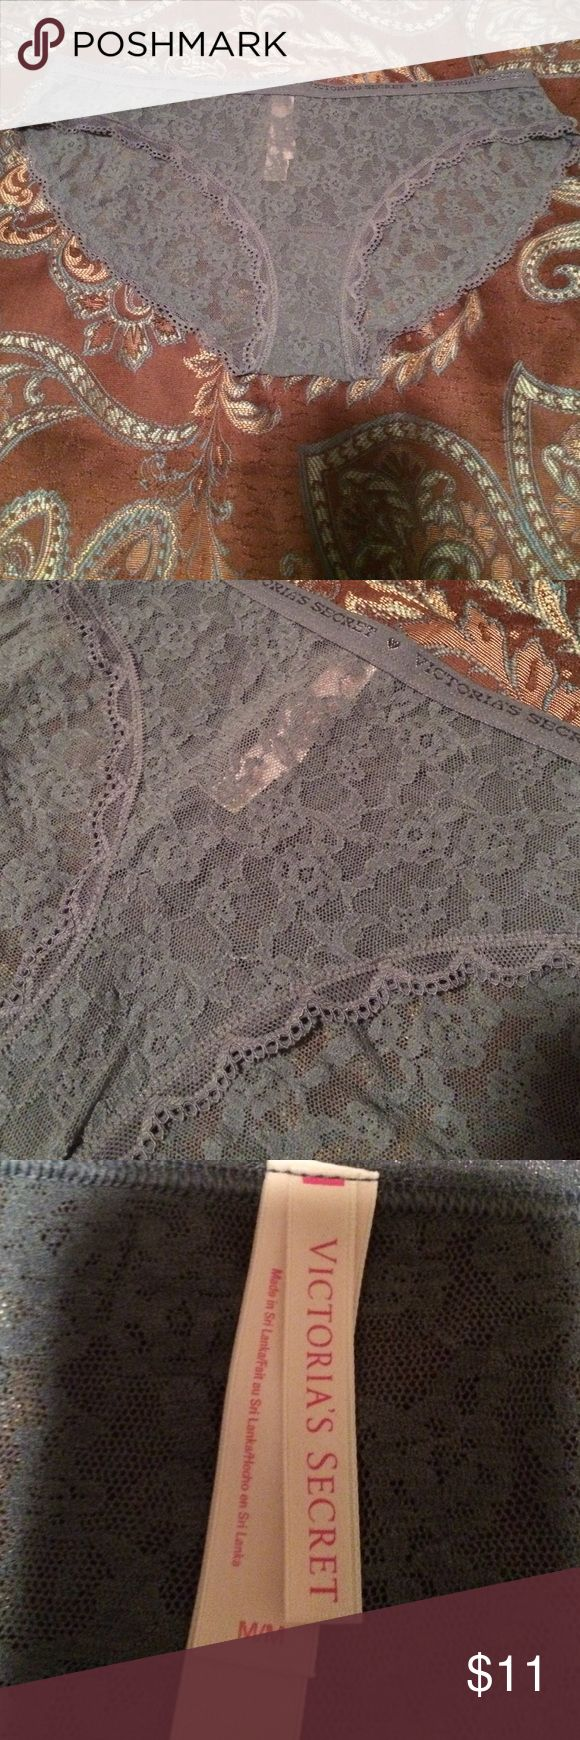 Victoria's Secret lace bikini panty Brand new, bought online so no tags Victoria's Secret Intimates & Sleepwear Panties